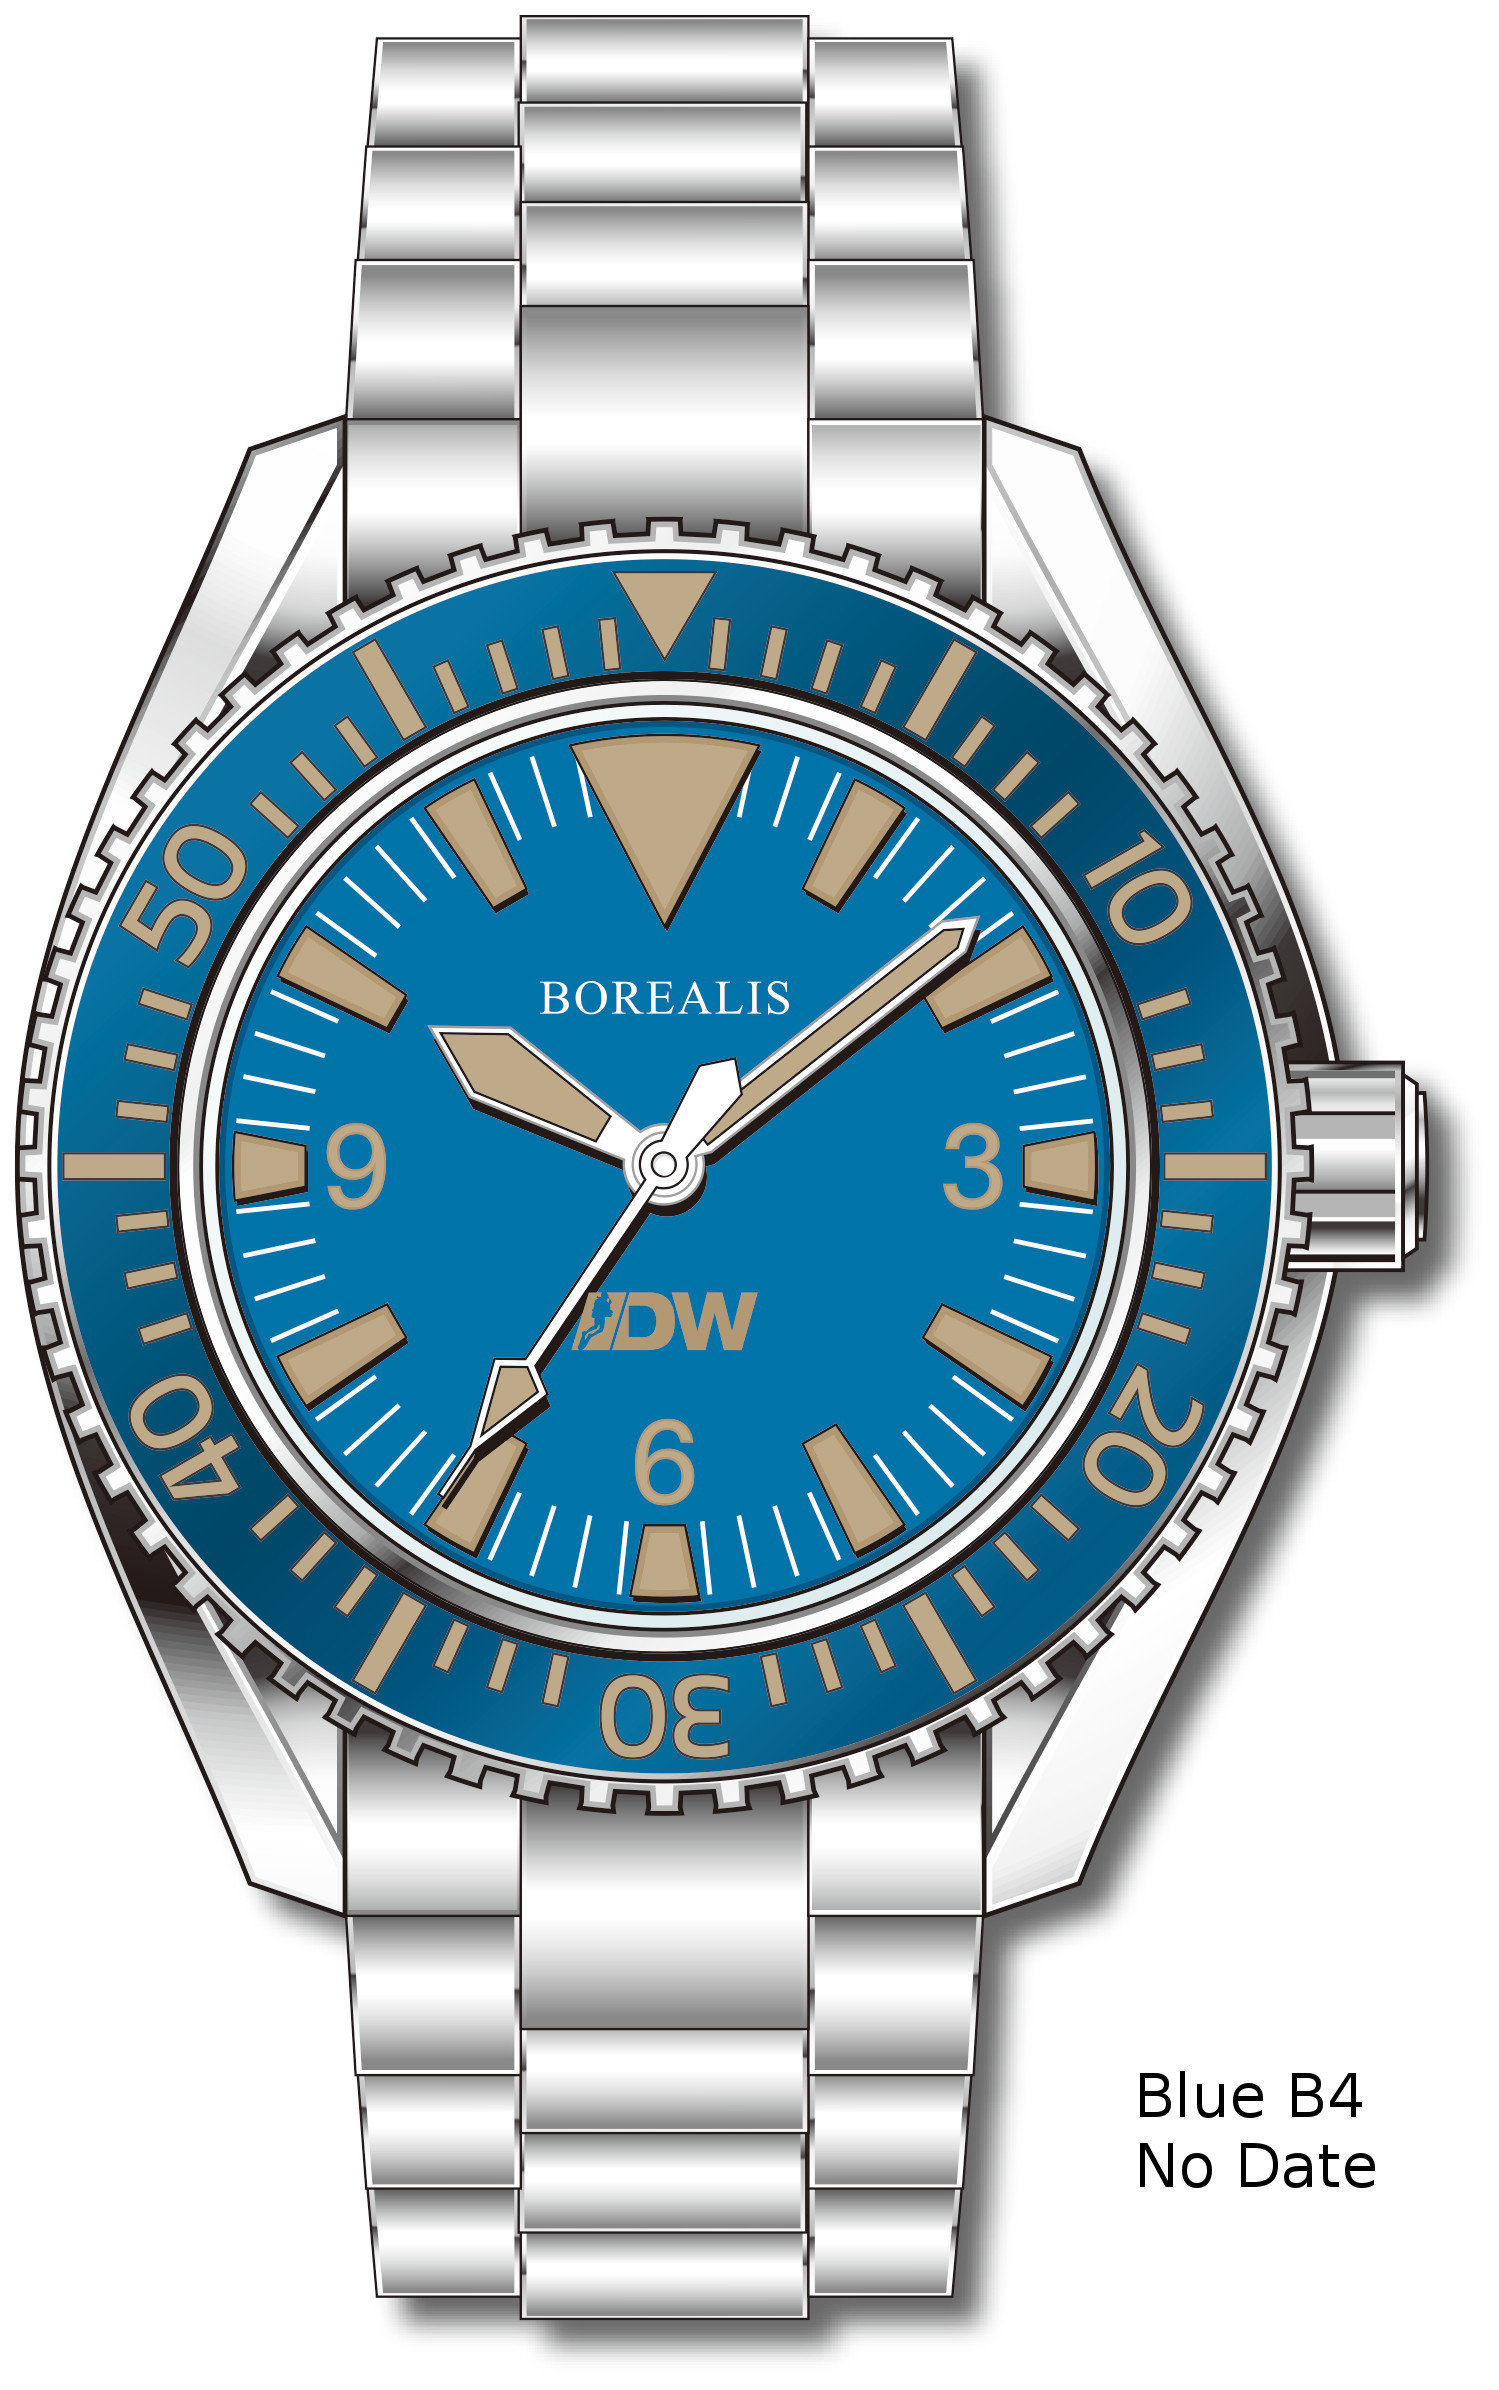 Pre-Order Borealis Estoril 300 for Diver's Watches Facebook Group Blue Dial Big Triangle No Date Blue B4 No Date